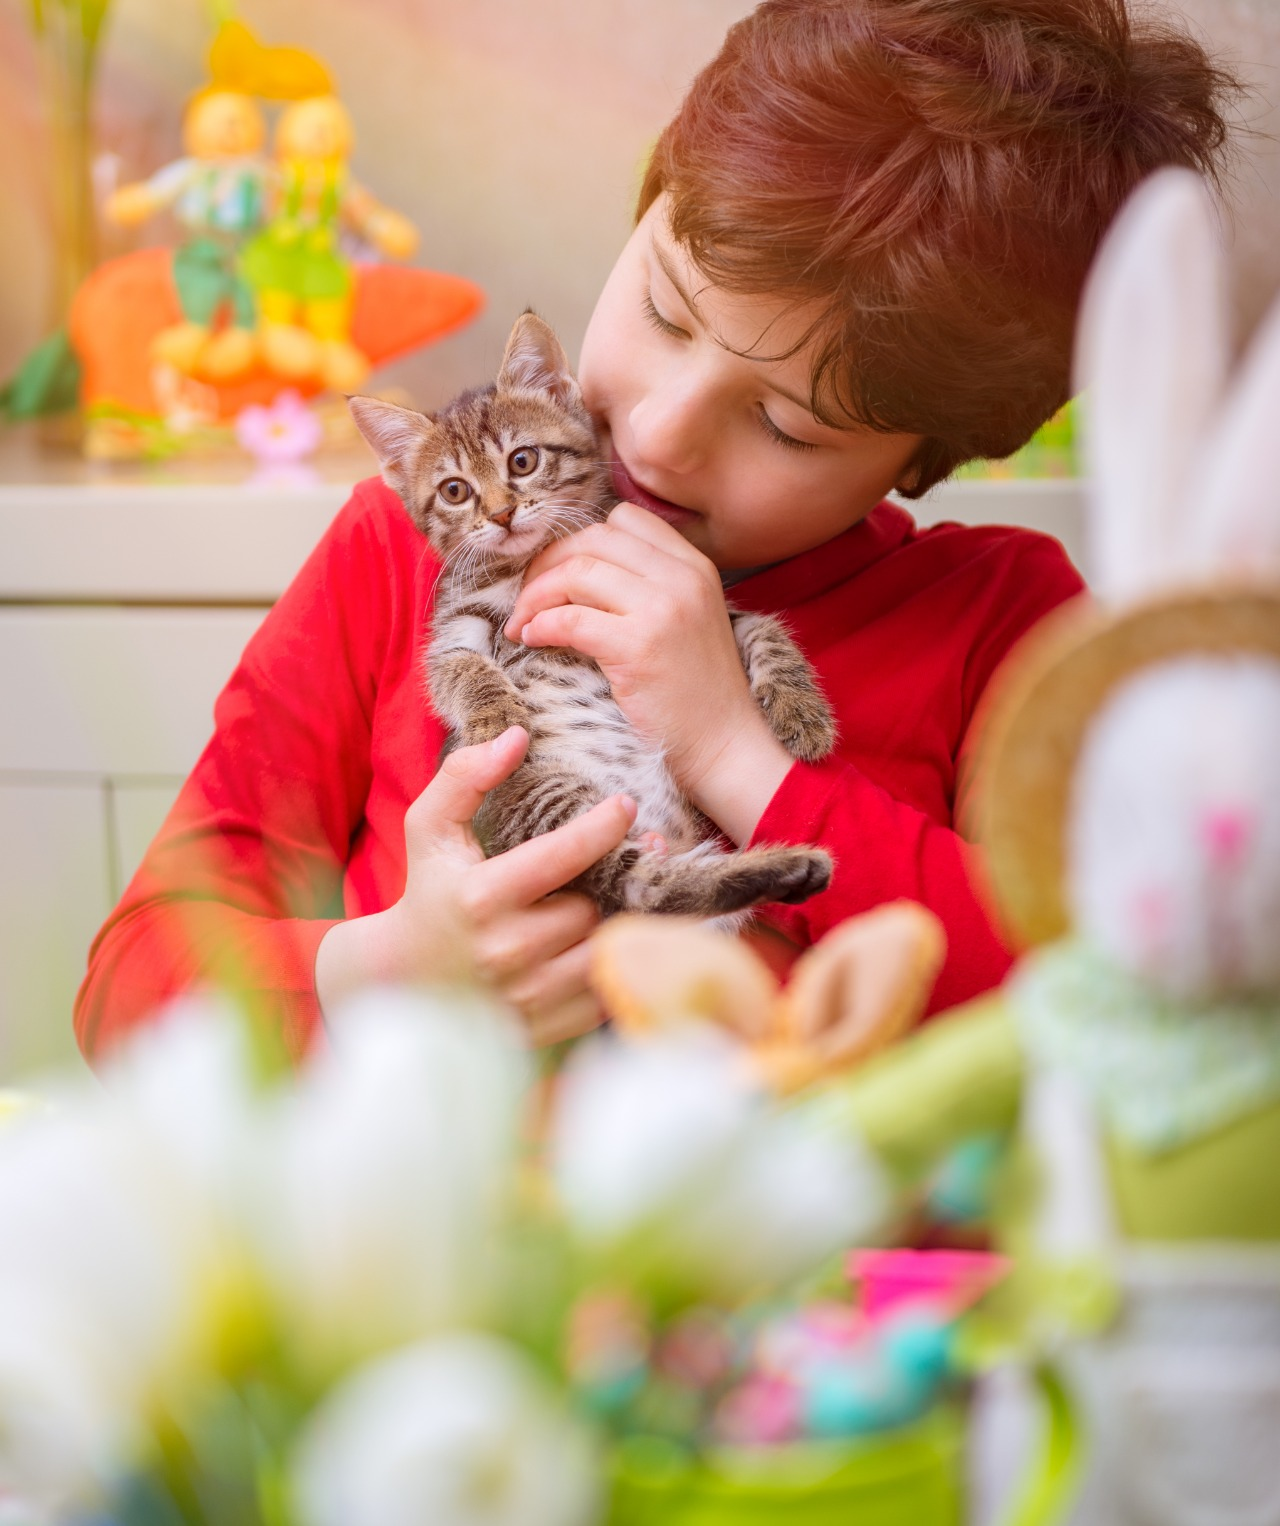 Child playing with small cat